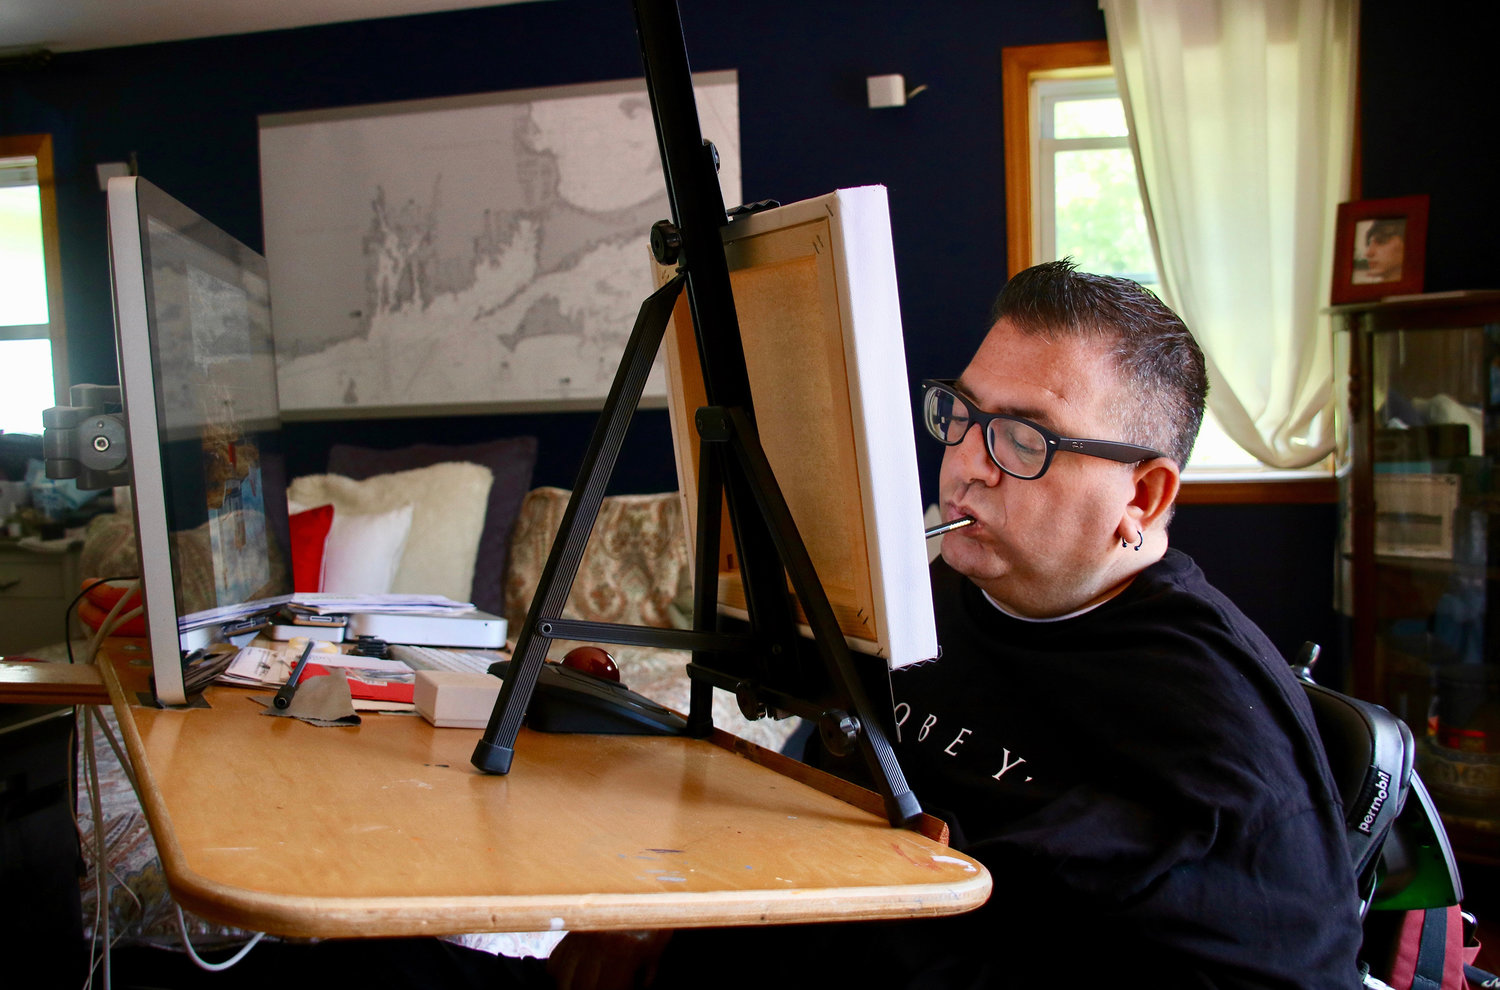 In his home studio, Jason positions an easel close to his computer to use friends' digital photos as inspiration